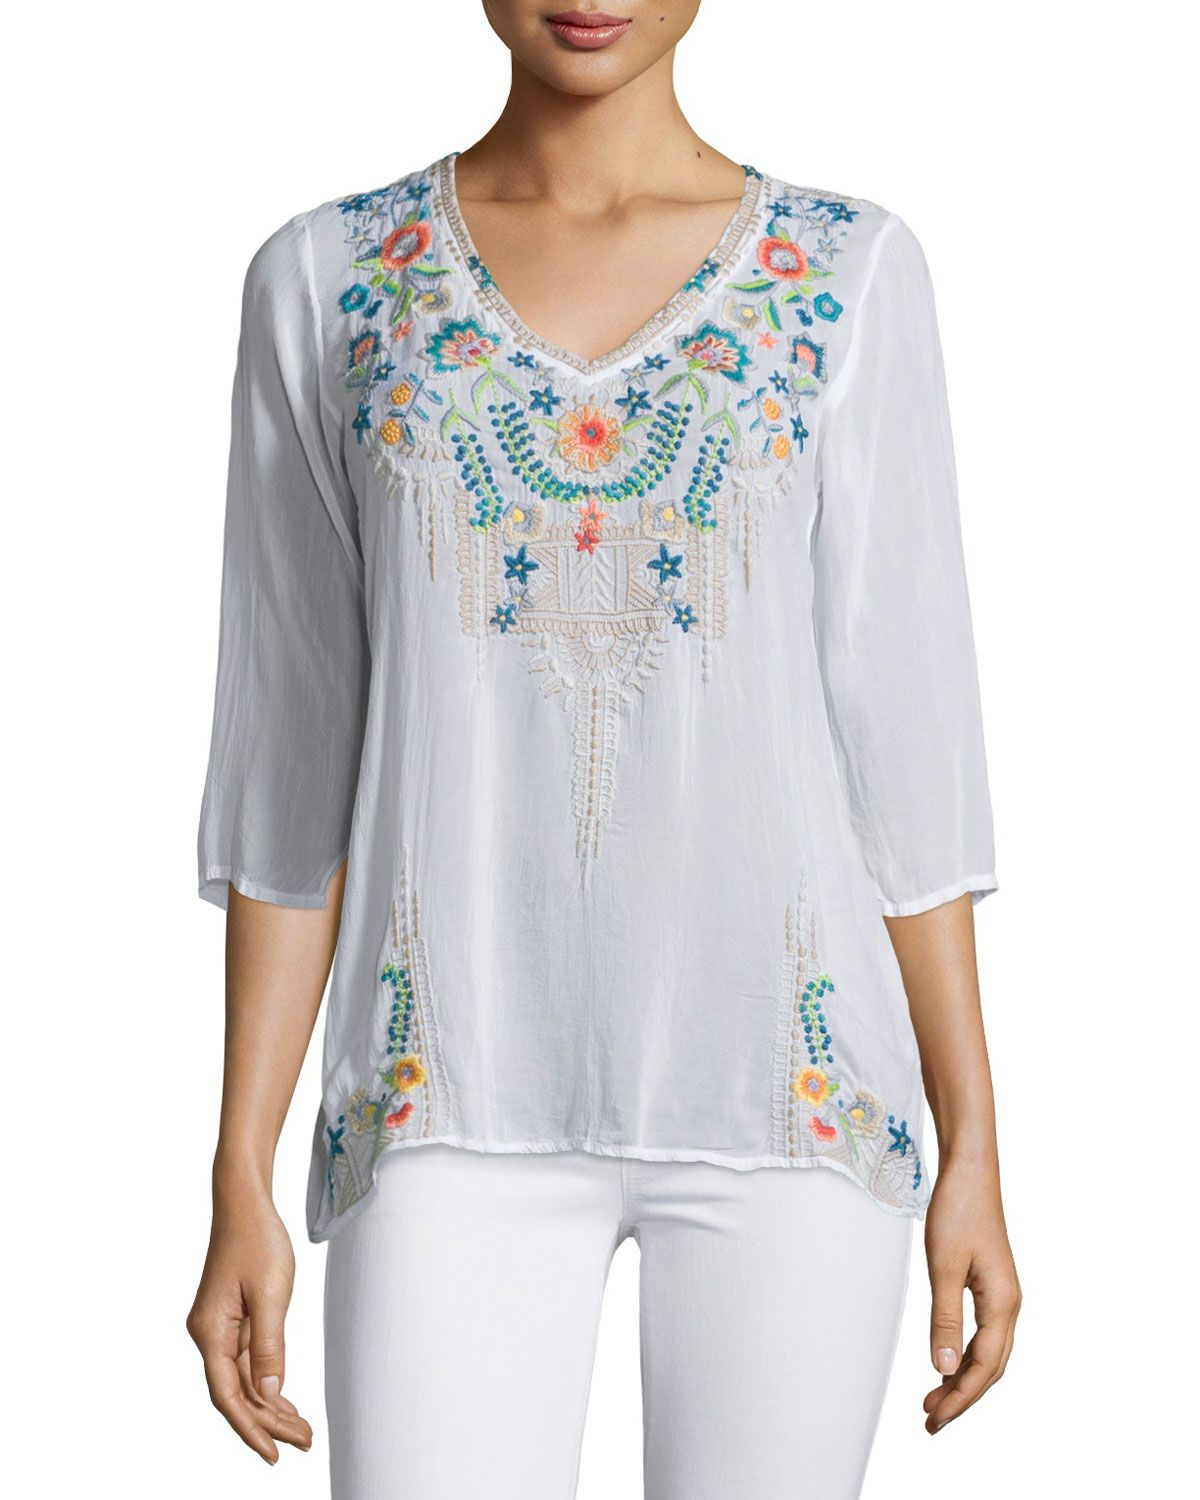 Tropic 3/4-Sleeve Embroidery Blouse, Plus Size, True Blue - Johnny Was Collection